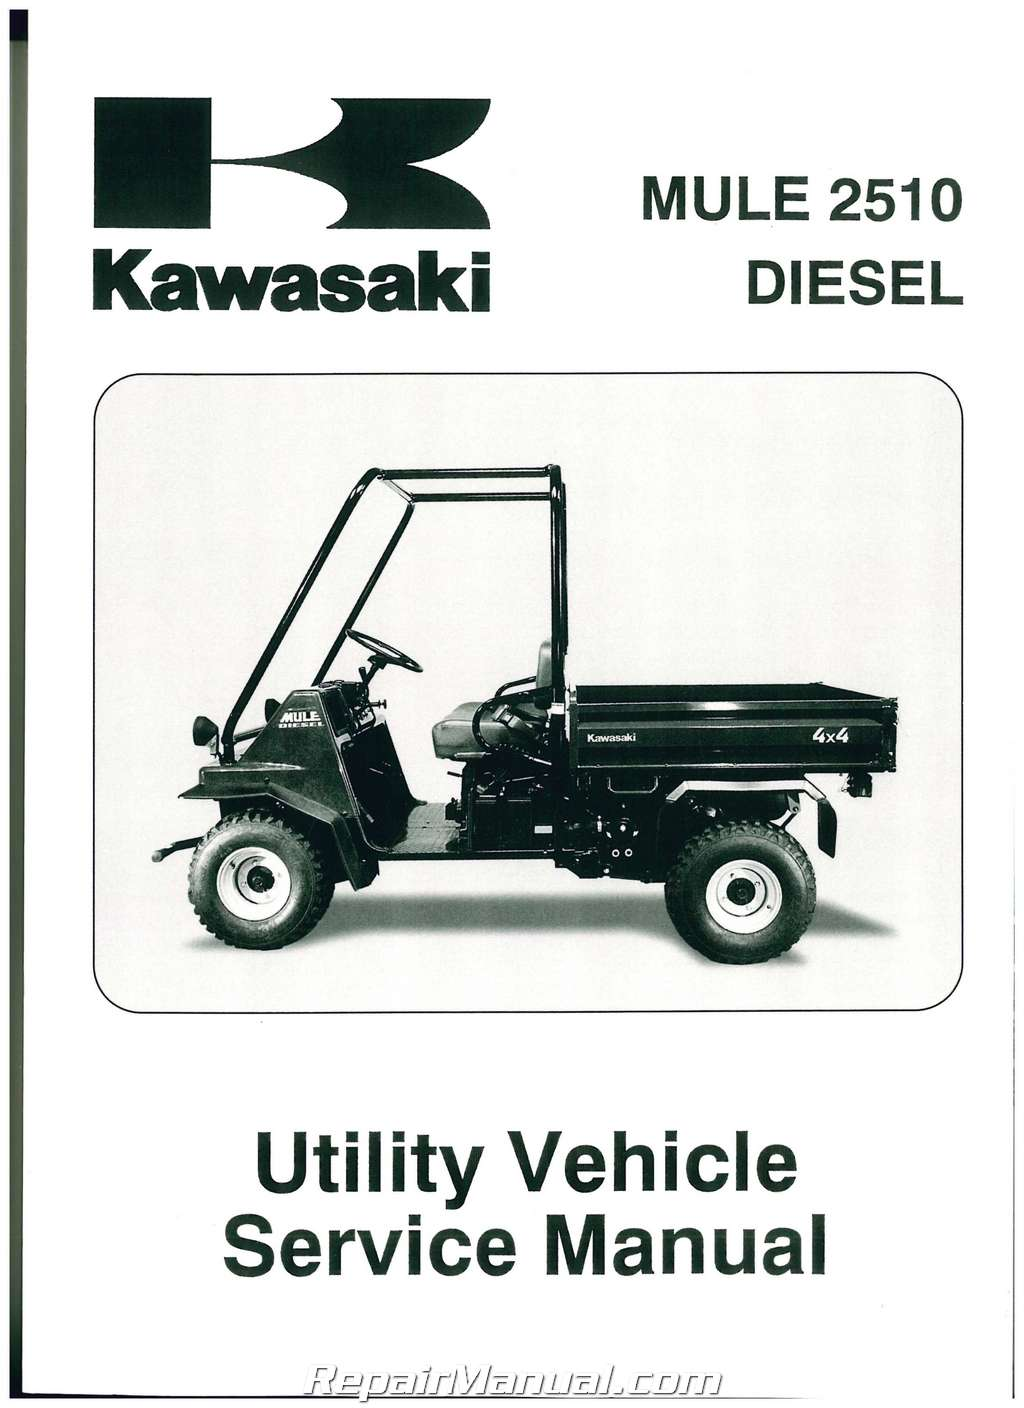 together with Maxresdefault likewise Maxresdefault moreover S L likewise Mulefilter. on kawasaki mule 2510 parts